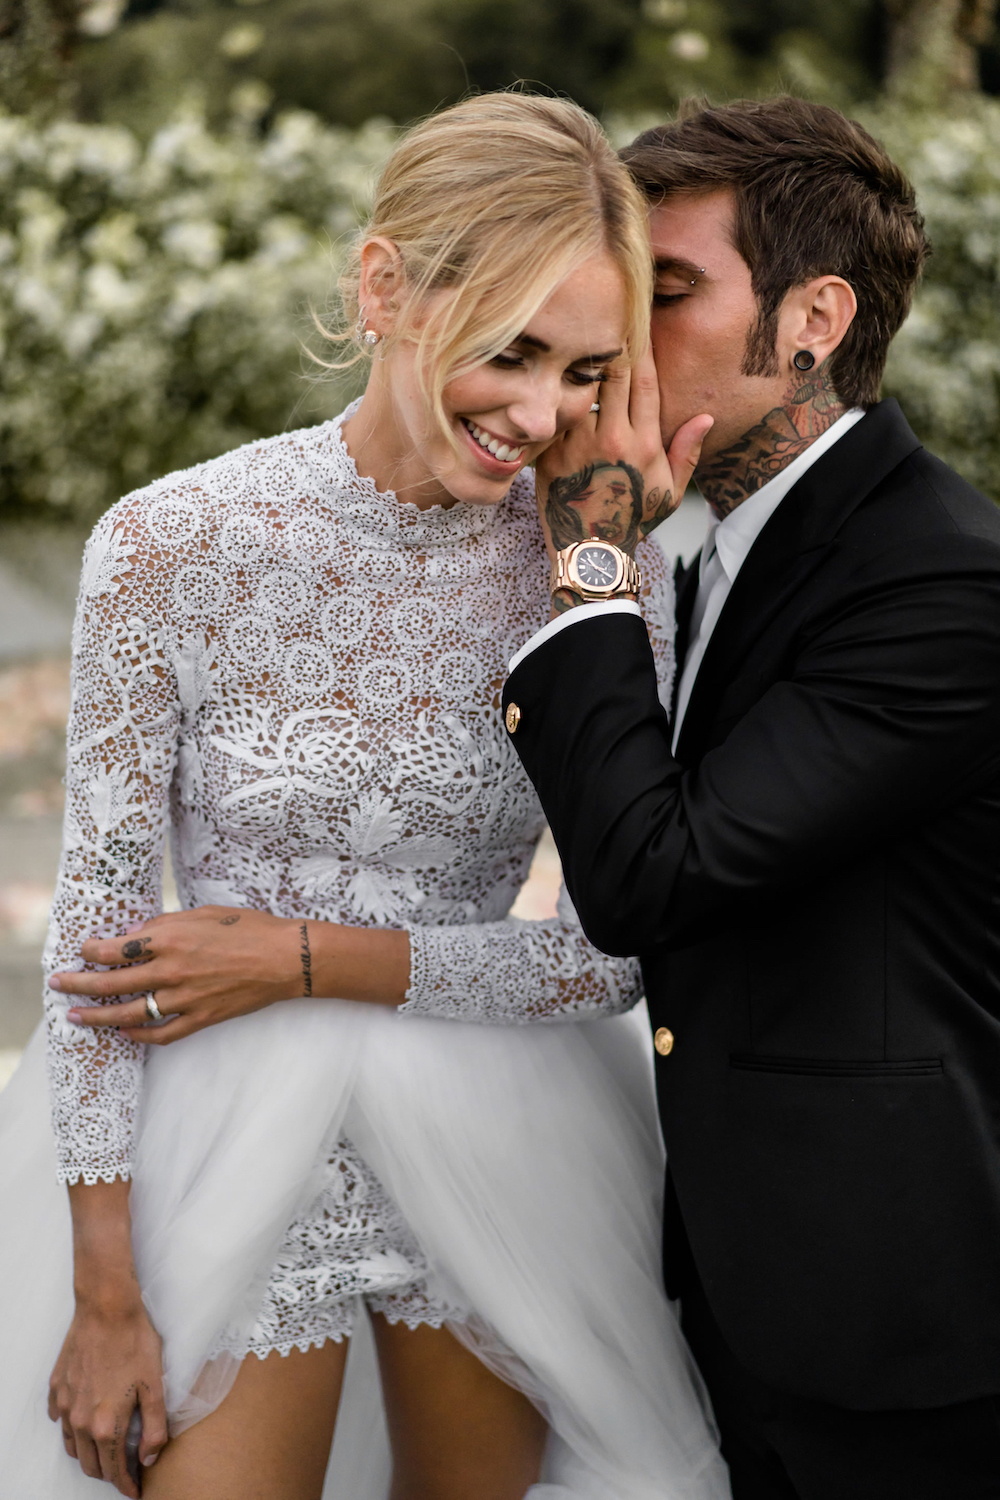 002b8a9d449 ... Chiara walked down the aisle accompanied by her father Marco Ferragni.  Wearing a custom-made Christian Dior Haute Couture dress created by Maria  ...